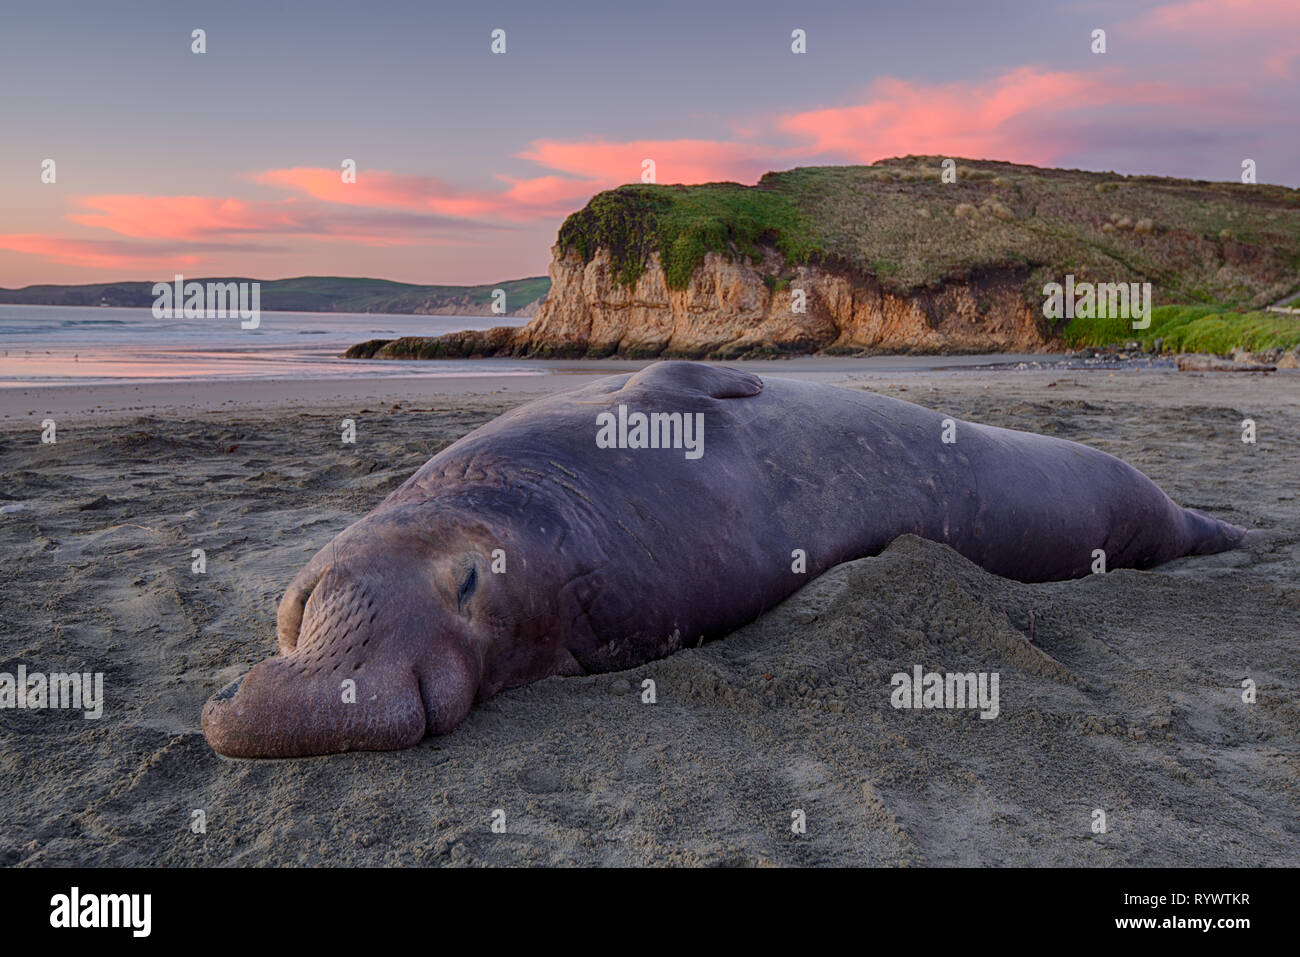 A bull elephant seal snoozes at the dawn of a new day. - Stock Image